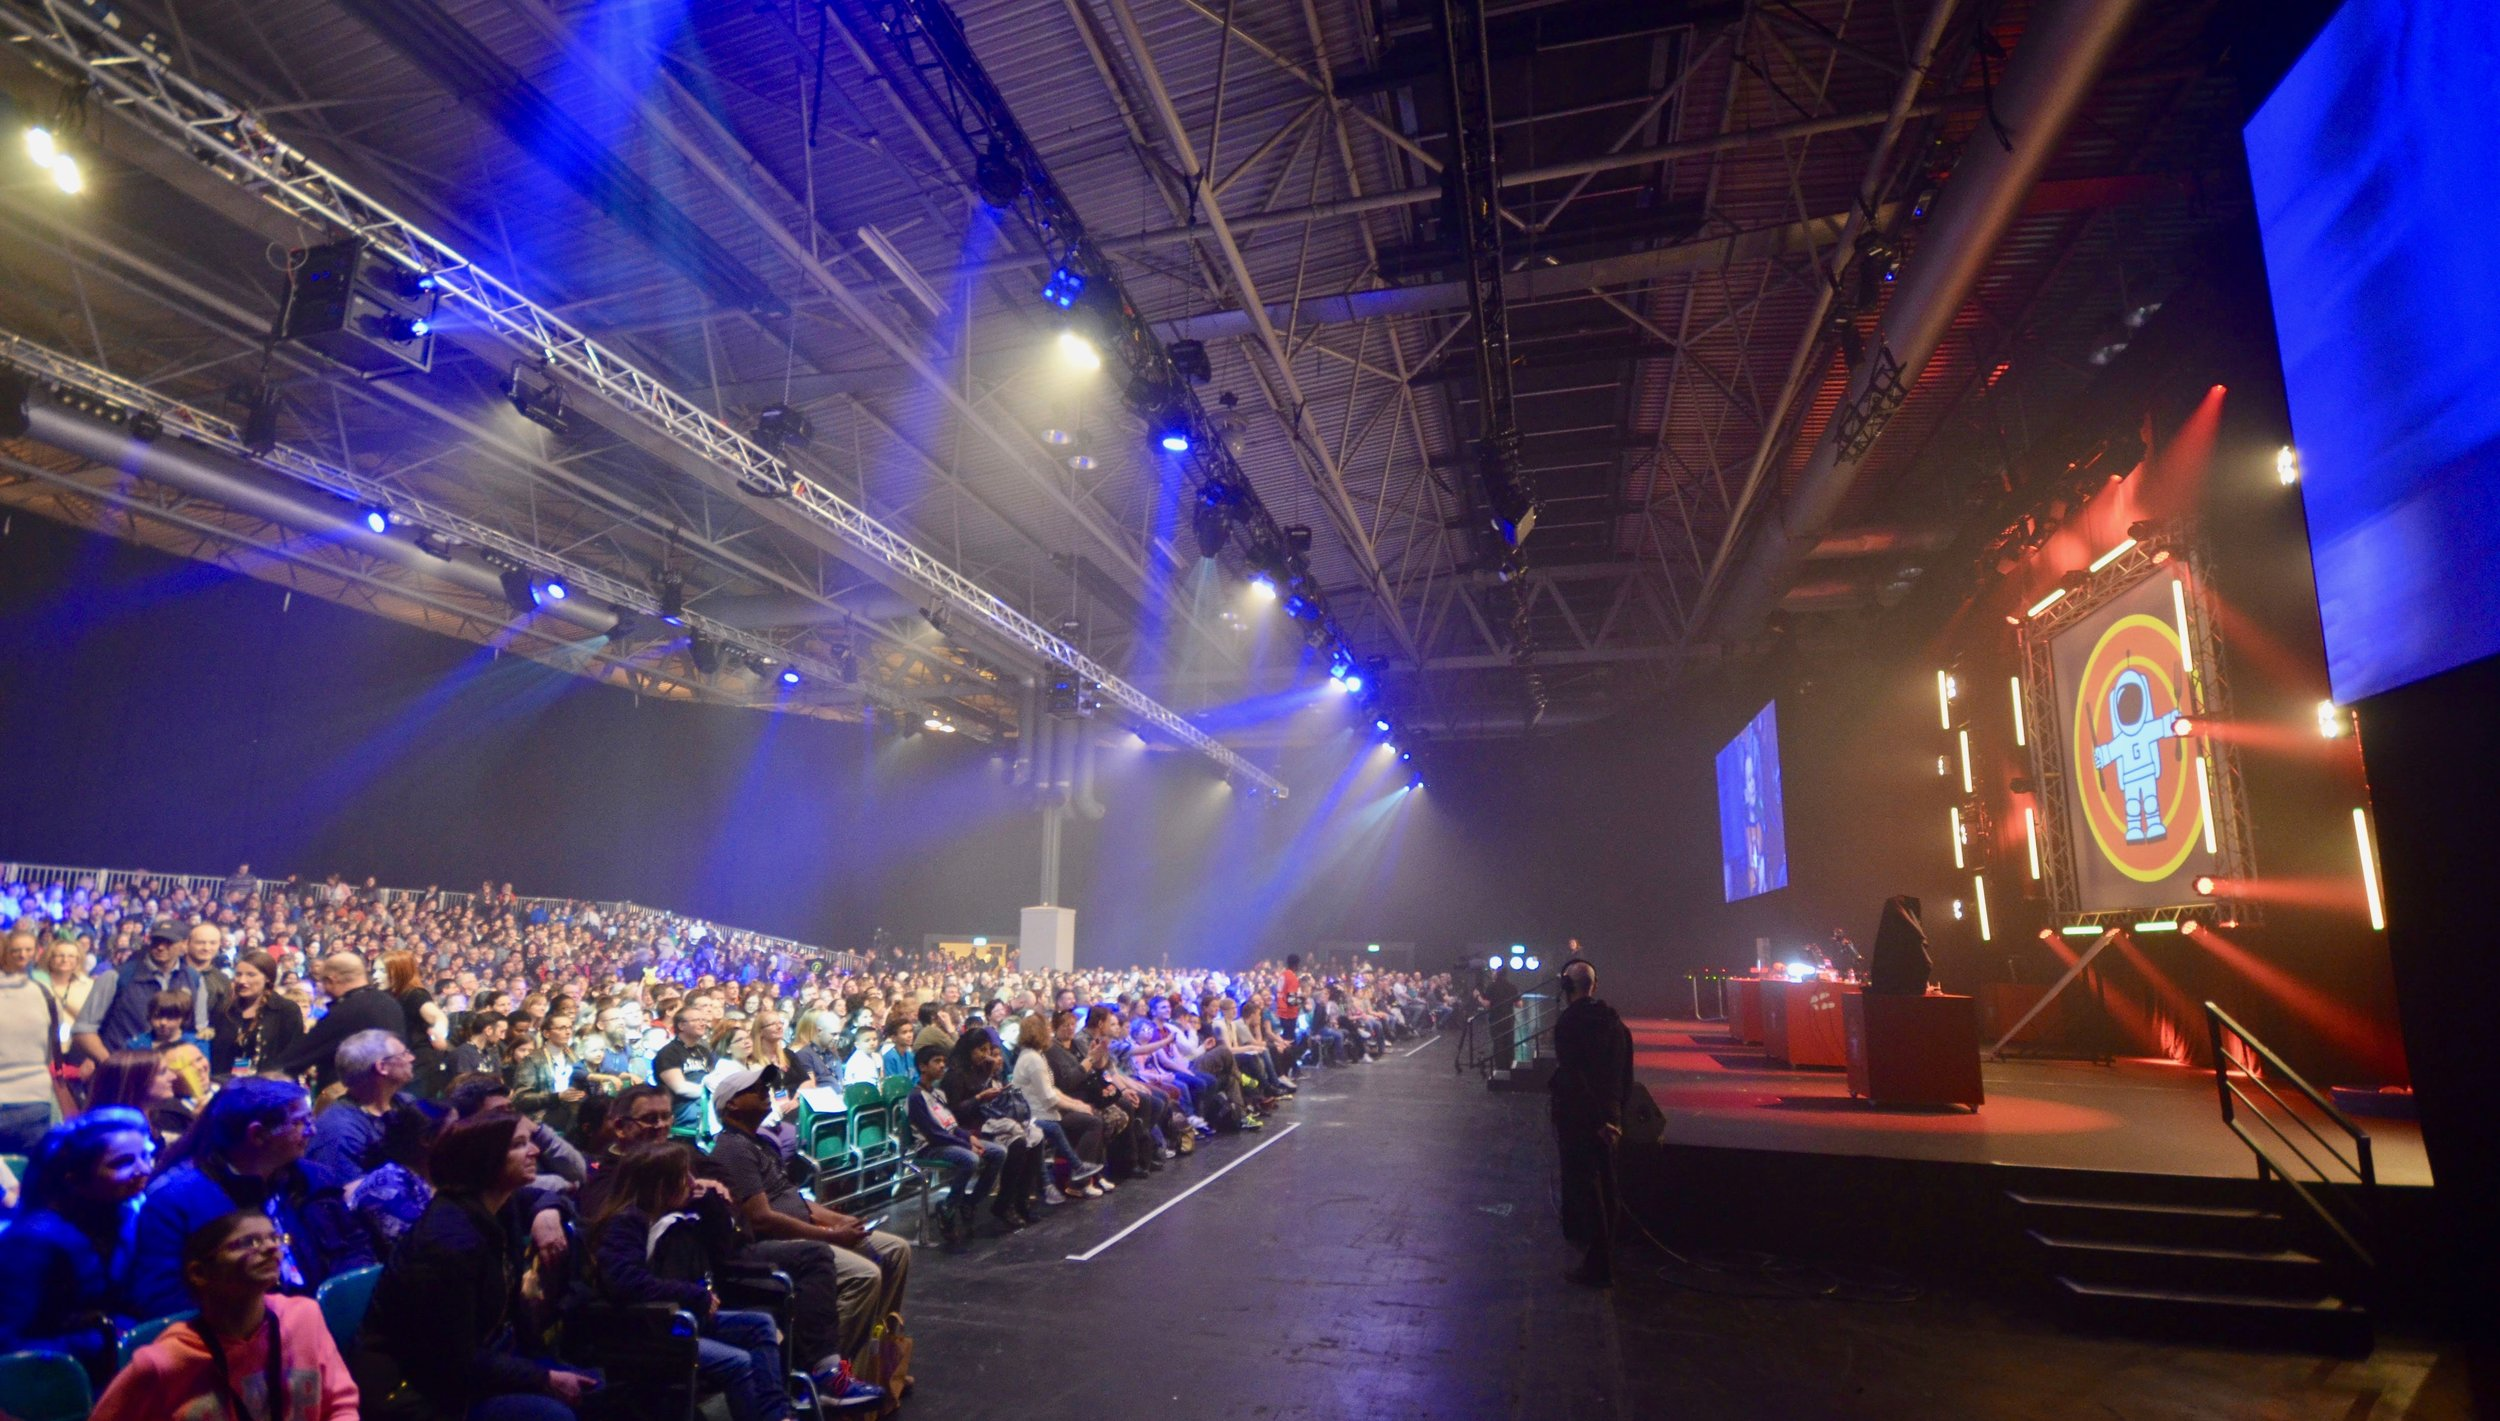 ADVENTURES IN FOOD + SCIENCE - WE MAKE AWARD-WINNING TV, BOOKS, RADIO AND WORLD-CLASS LIVE STAGE SHOWS